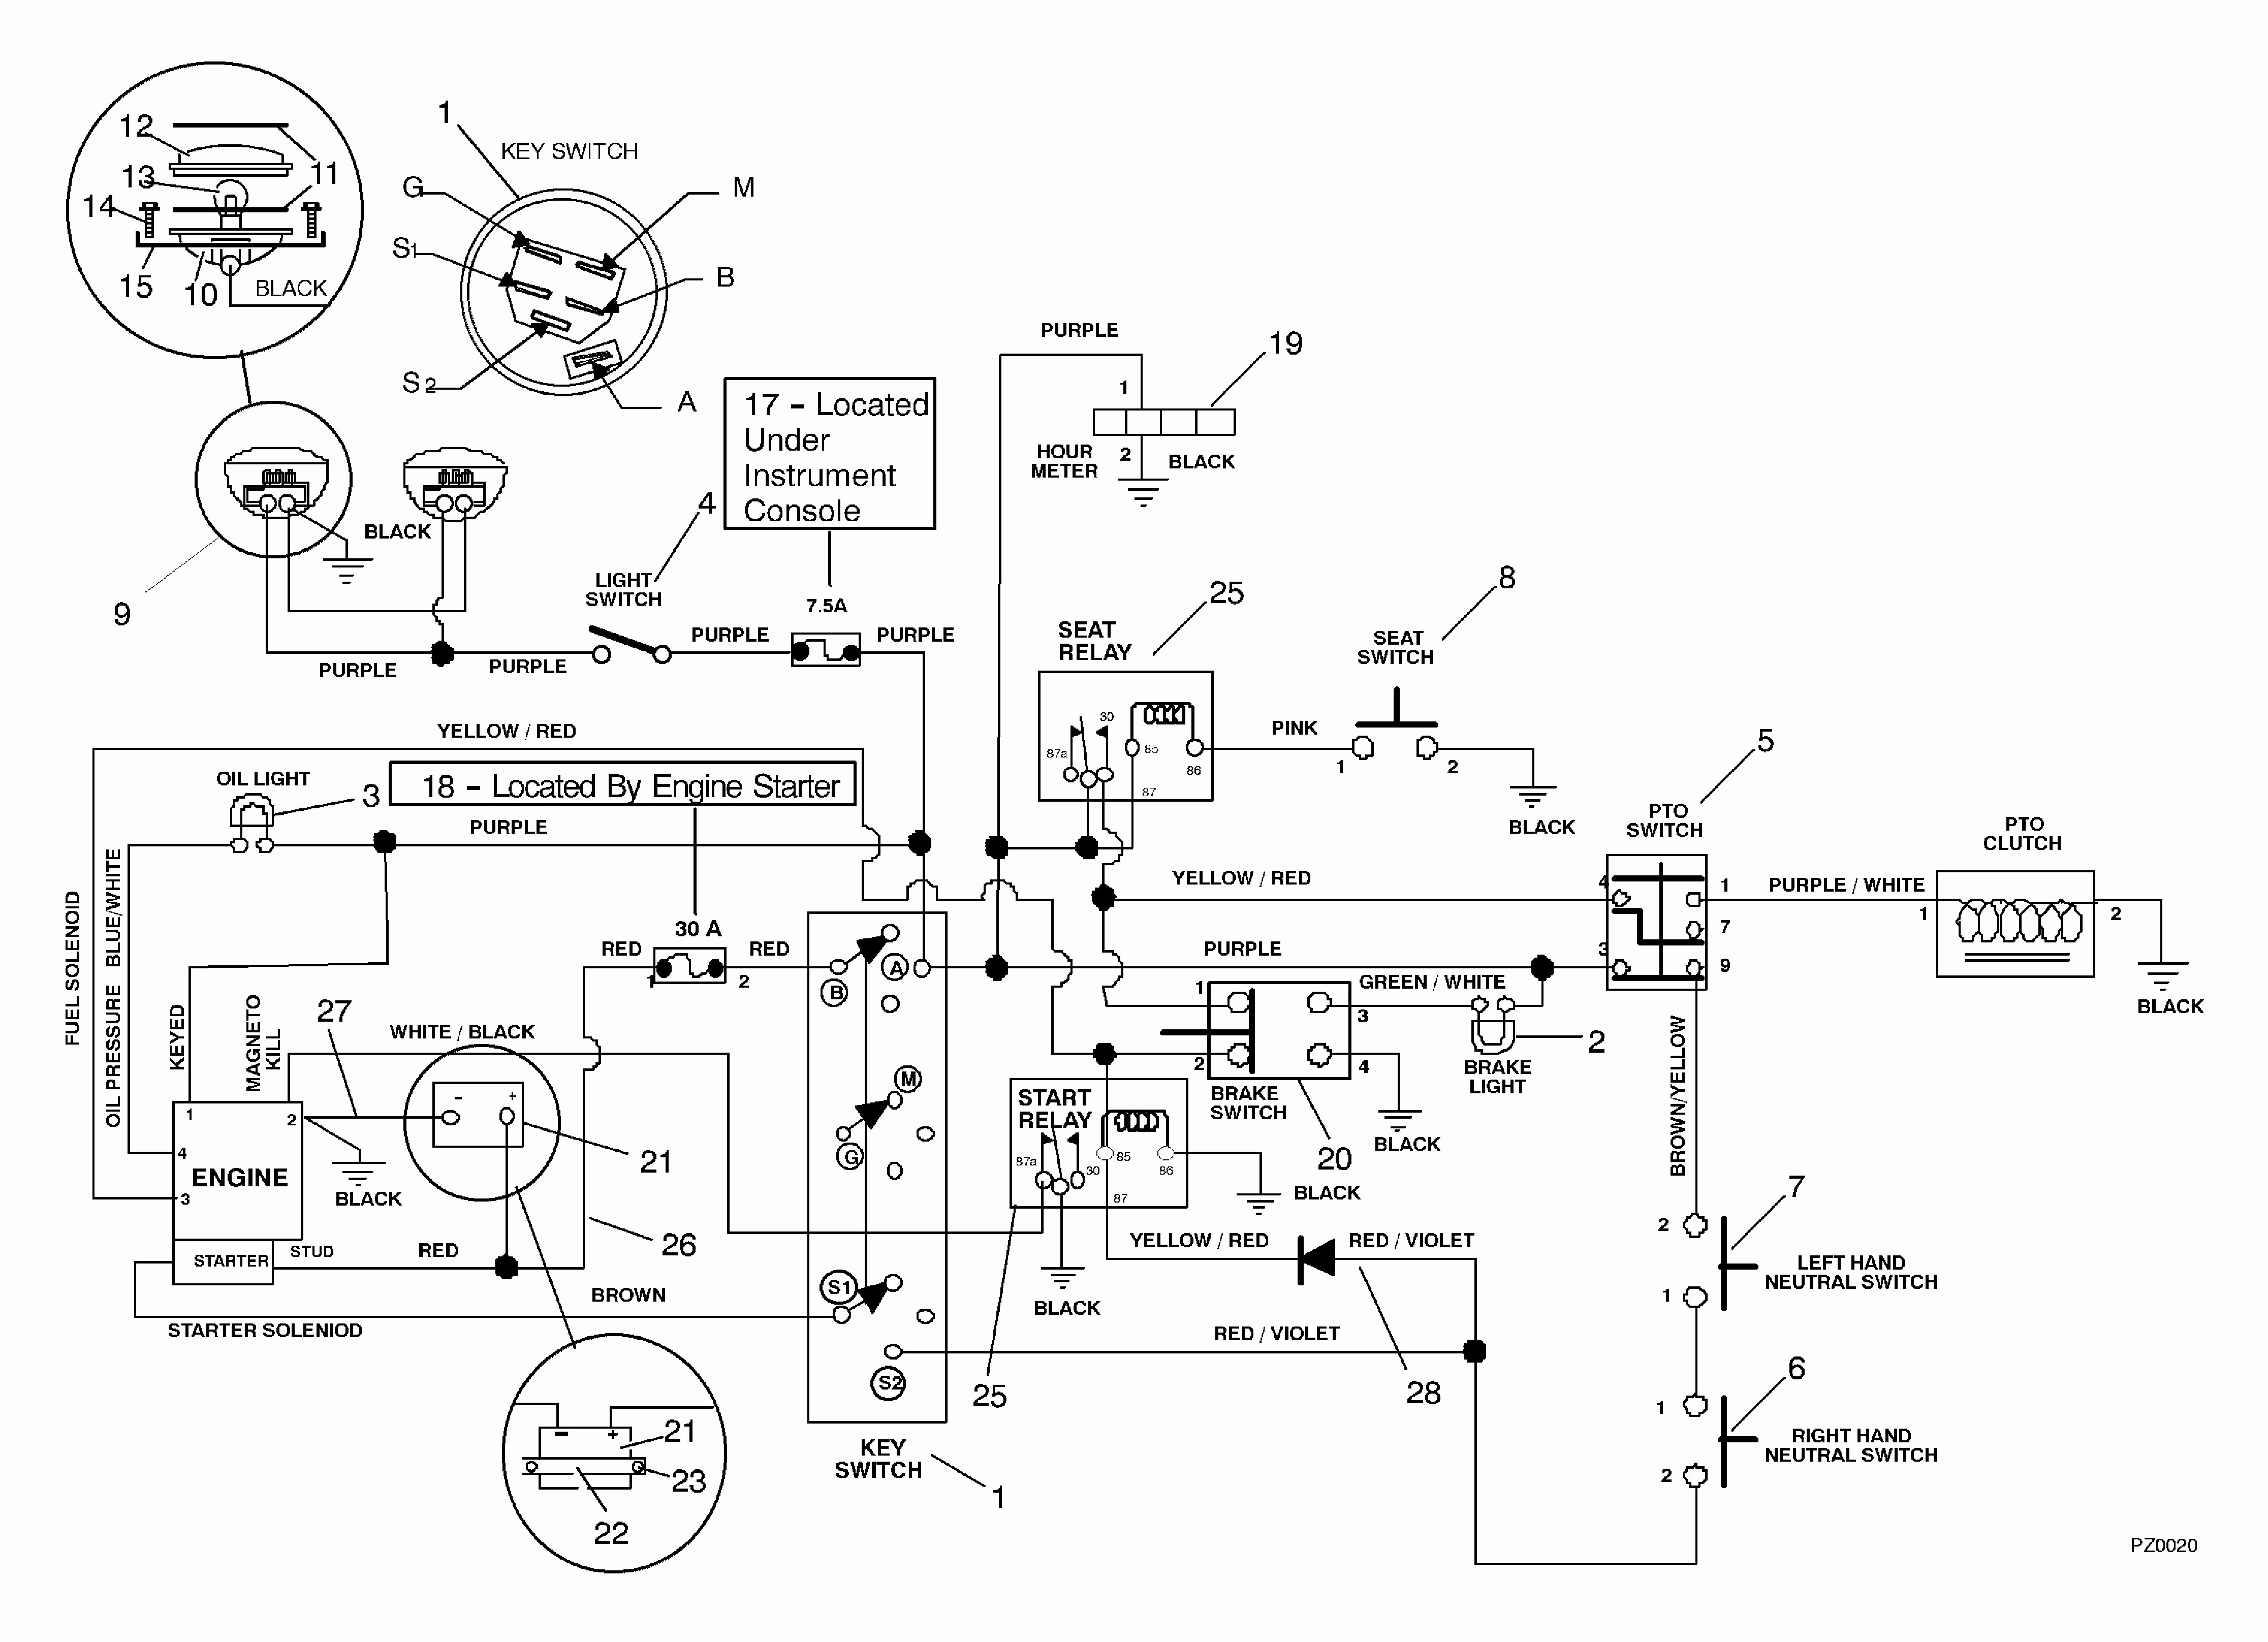 Points Wire Routing On K301 Engine Diagram] 8 Horse Kohler Engine Wiring Diagram Full Version Of Points Wire Routing On K301 Engine